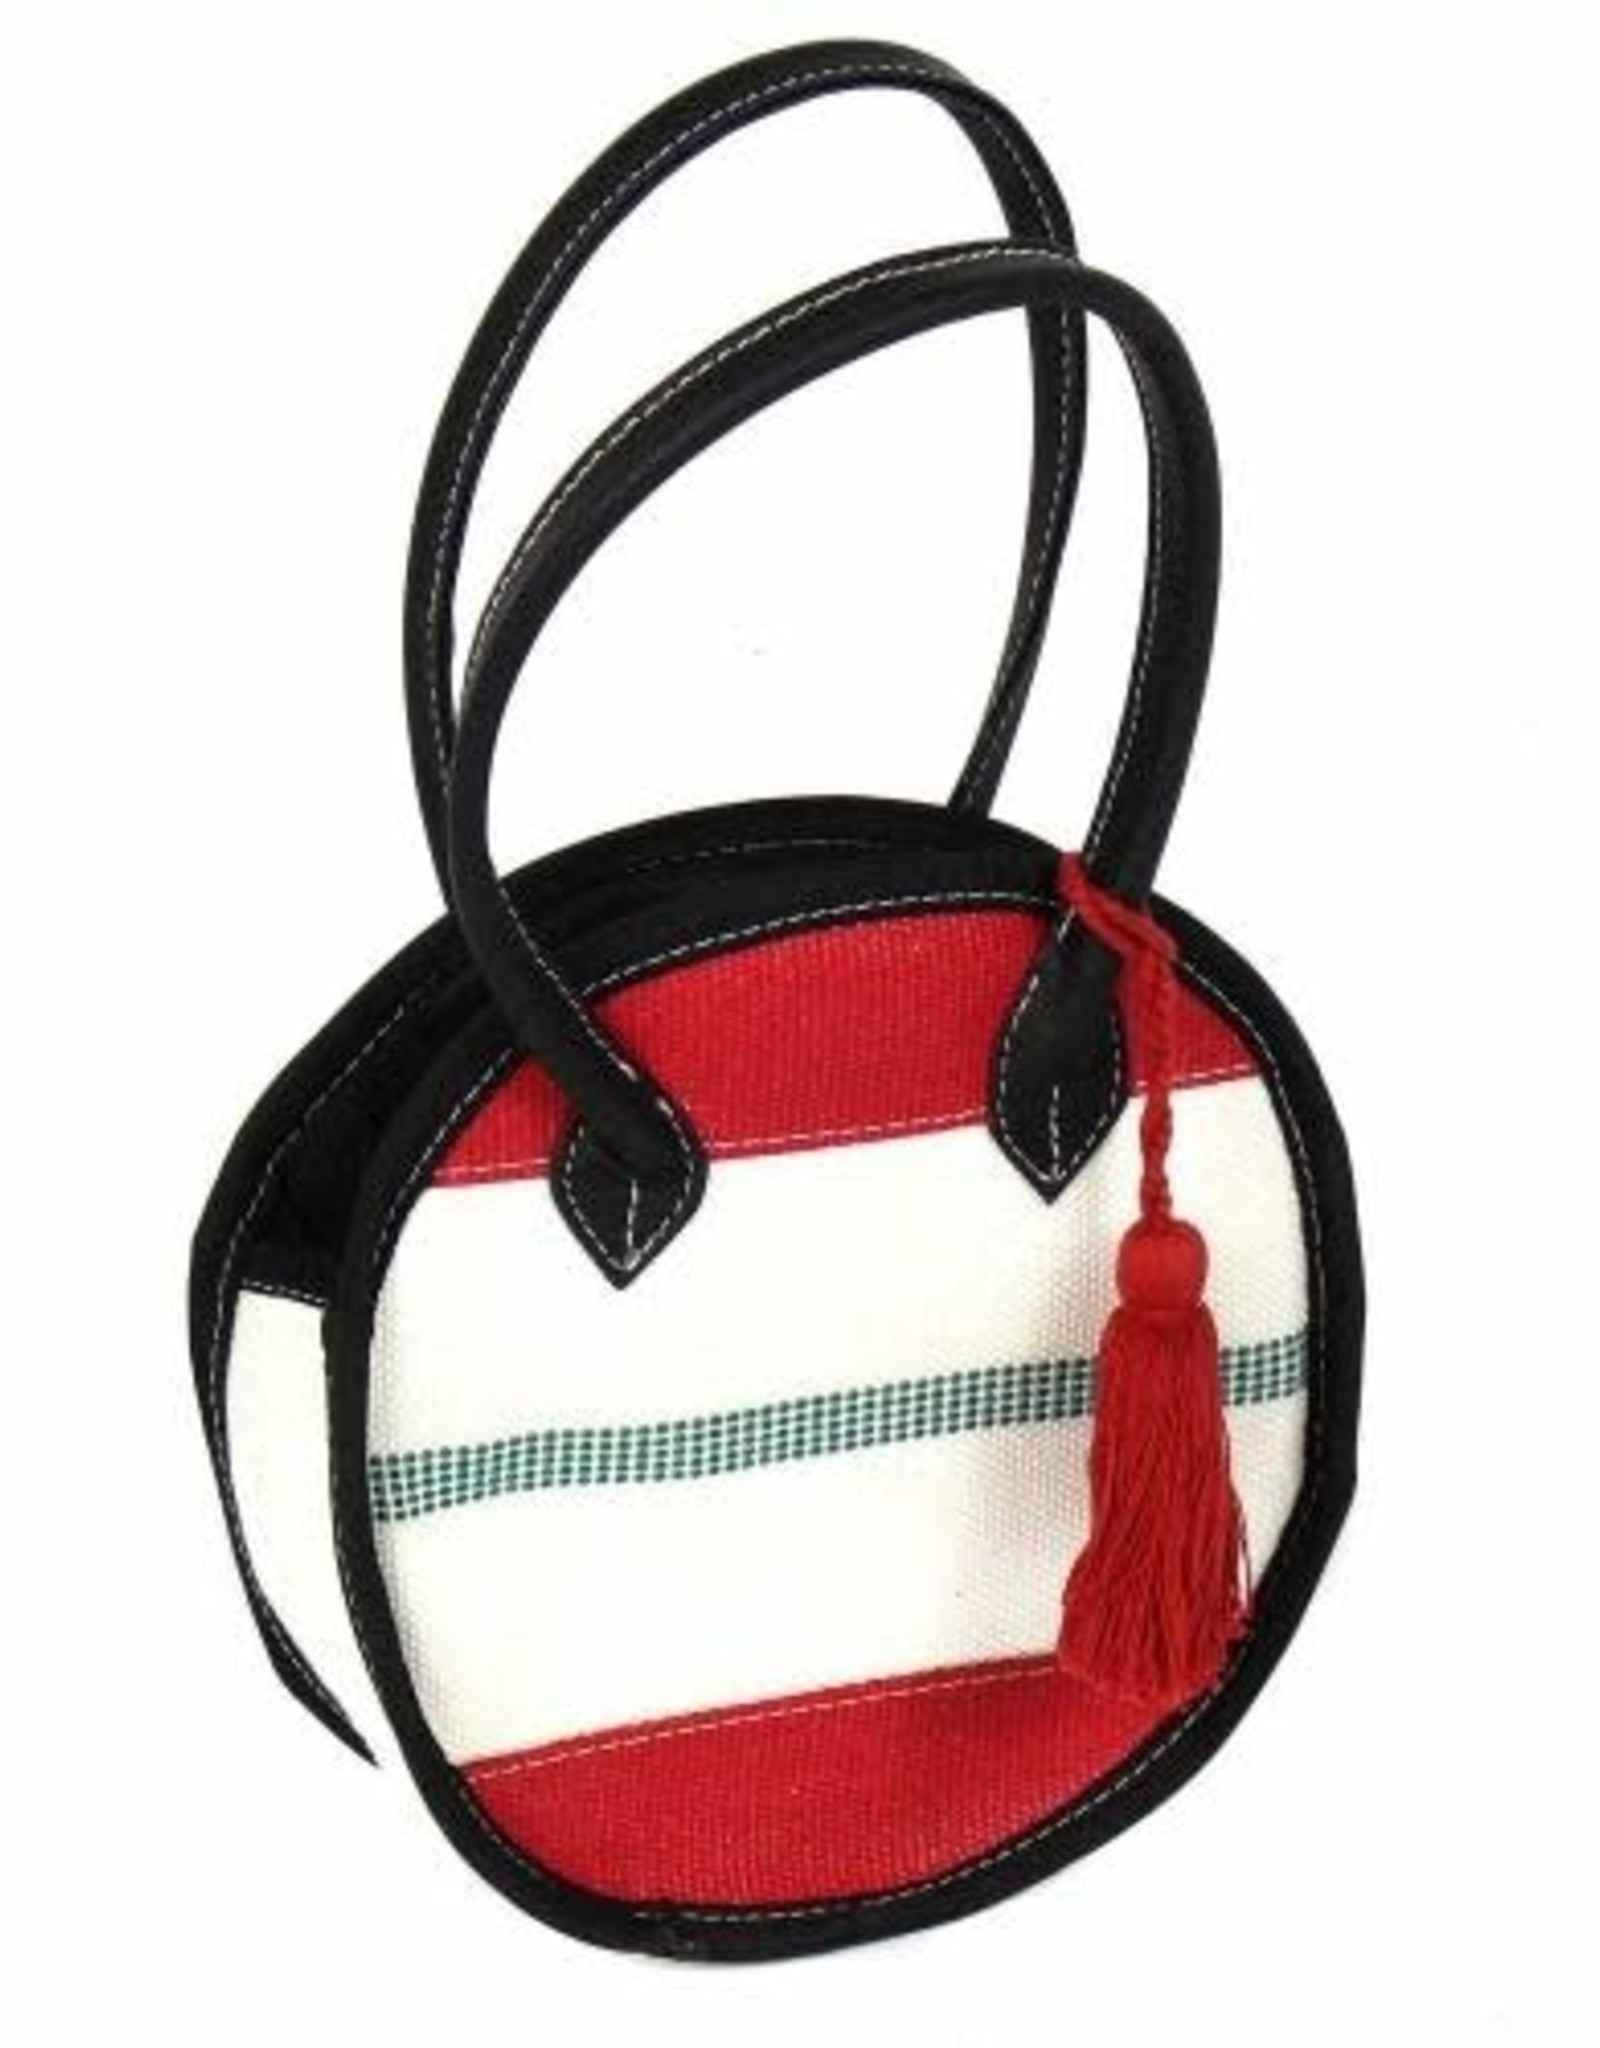 Recycled Firehose Bag Small Round Clutch, india